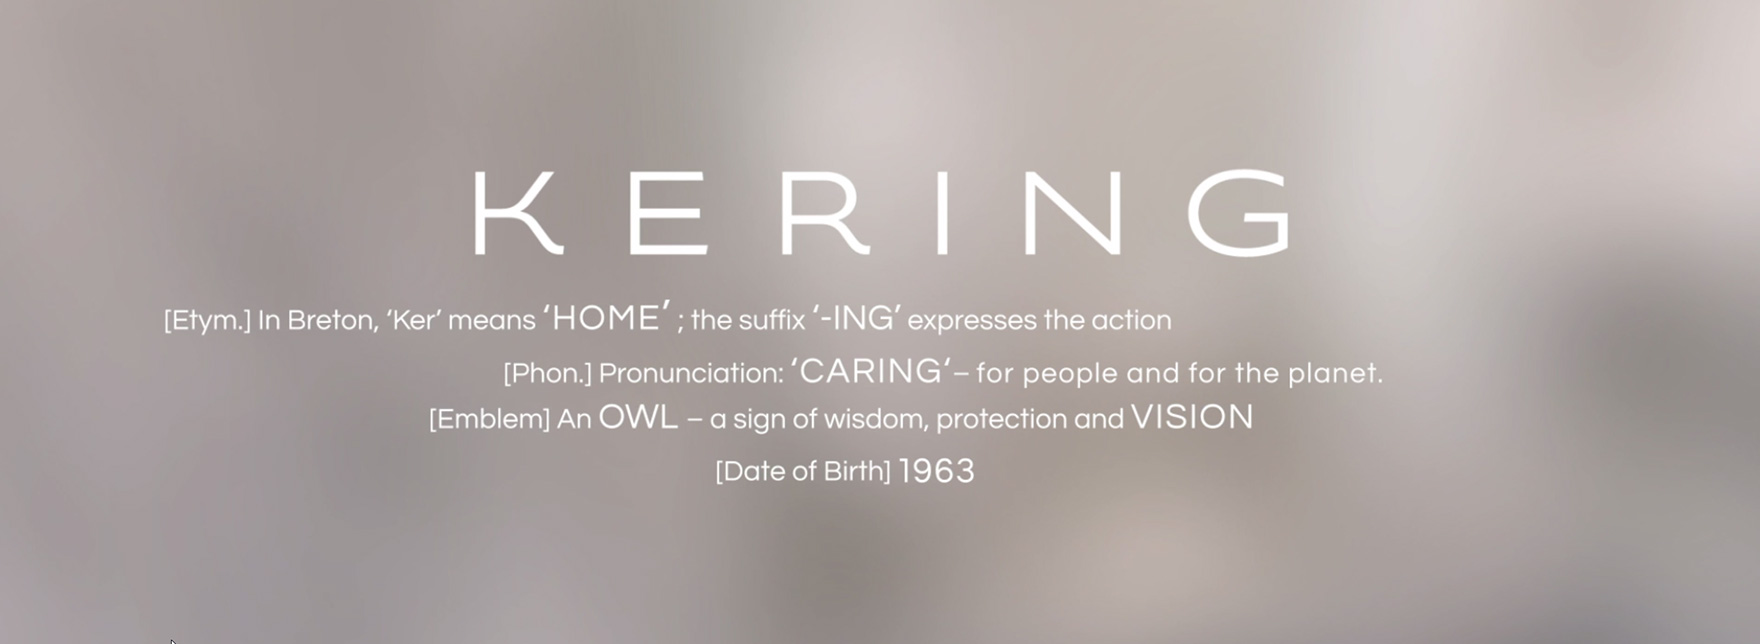 Kering at a glance